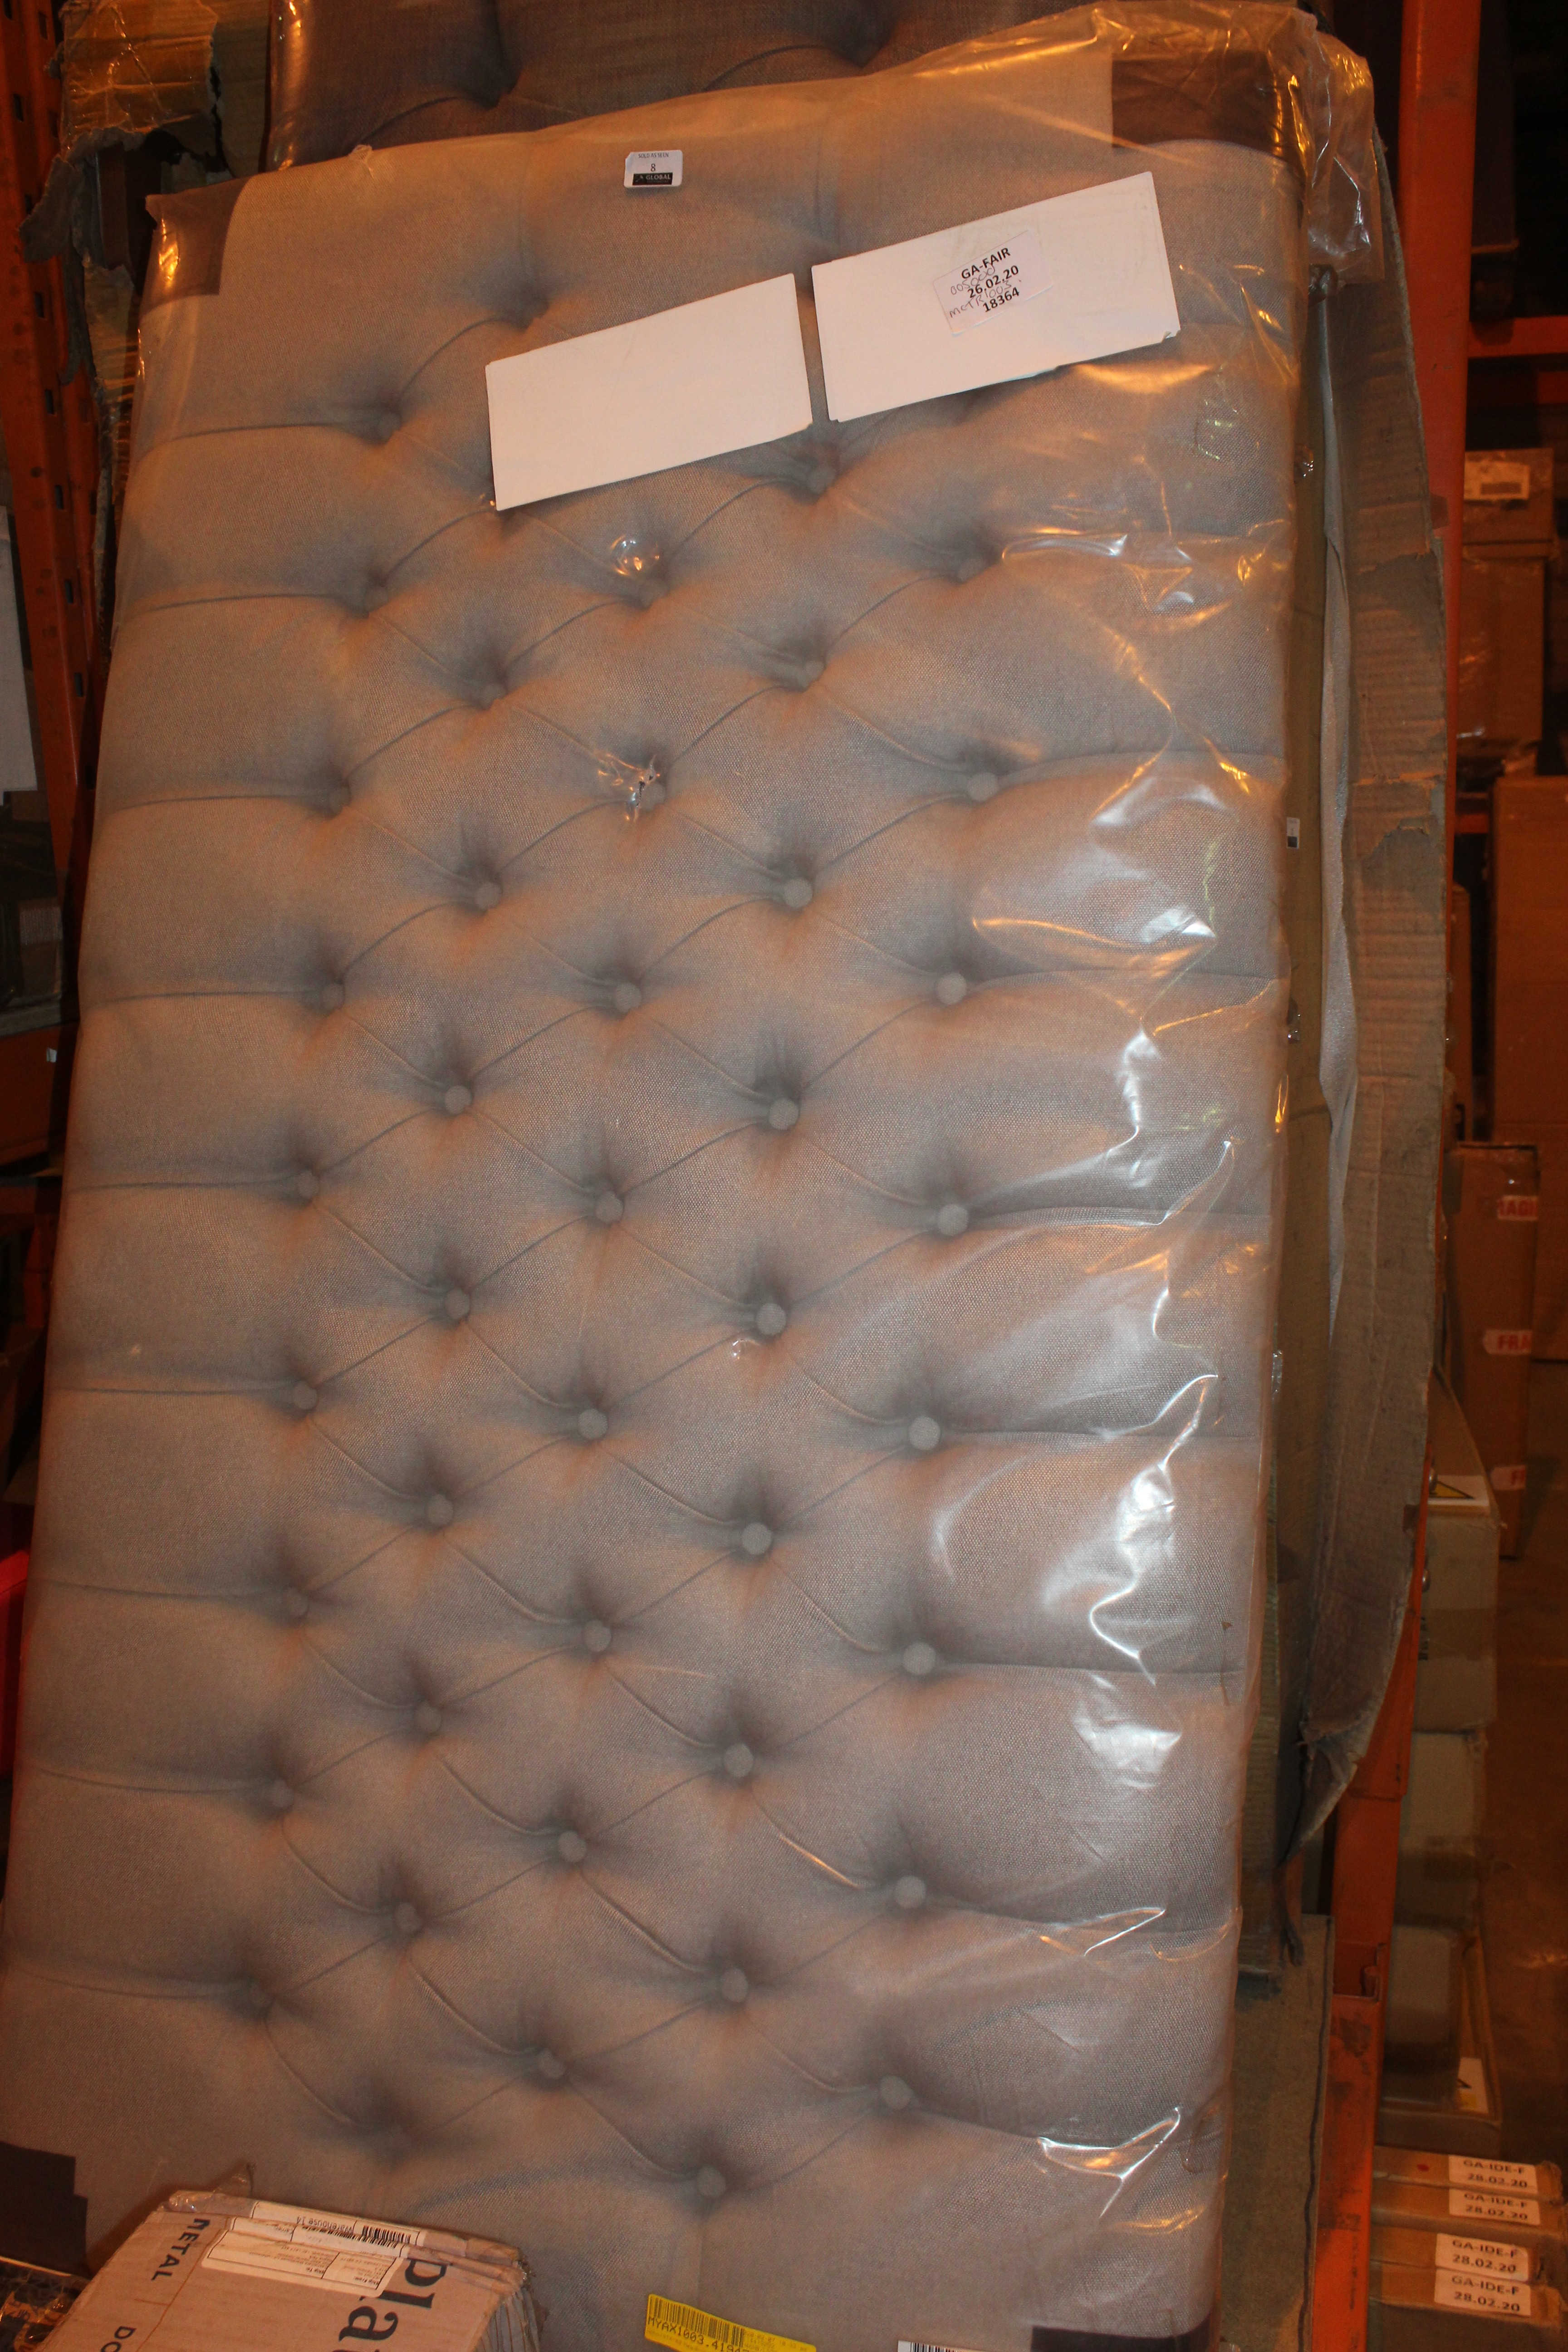 Grey Double Designer Headboard RRP £50. IMAGES ARE FOR ILLUSTRATION PURPOSES ONLY AND MAY NOT BE